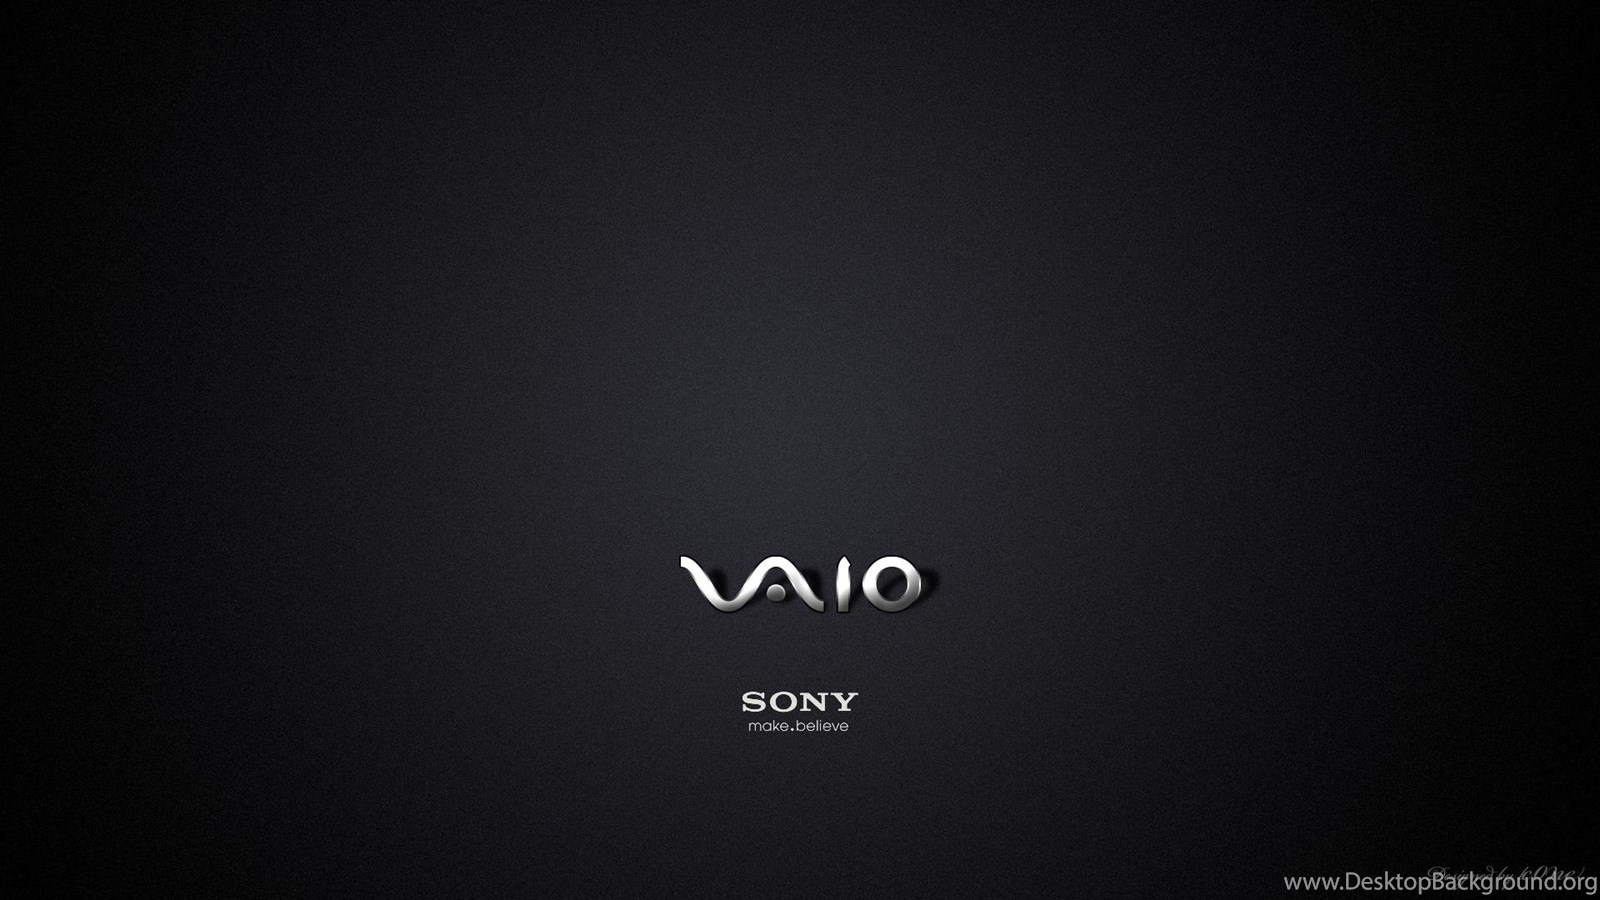 Vaio Wall Paper Black: Sony Vaio Wallpapers Hd Desktop Background